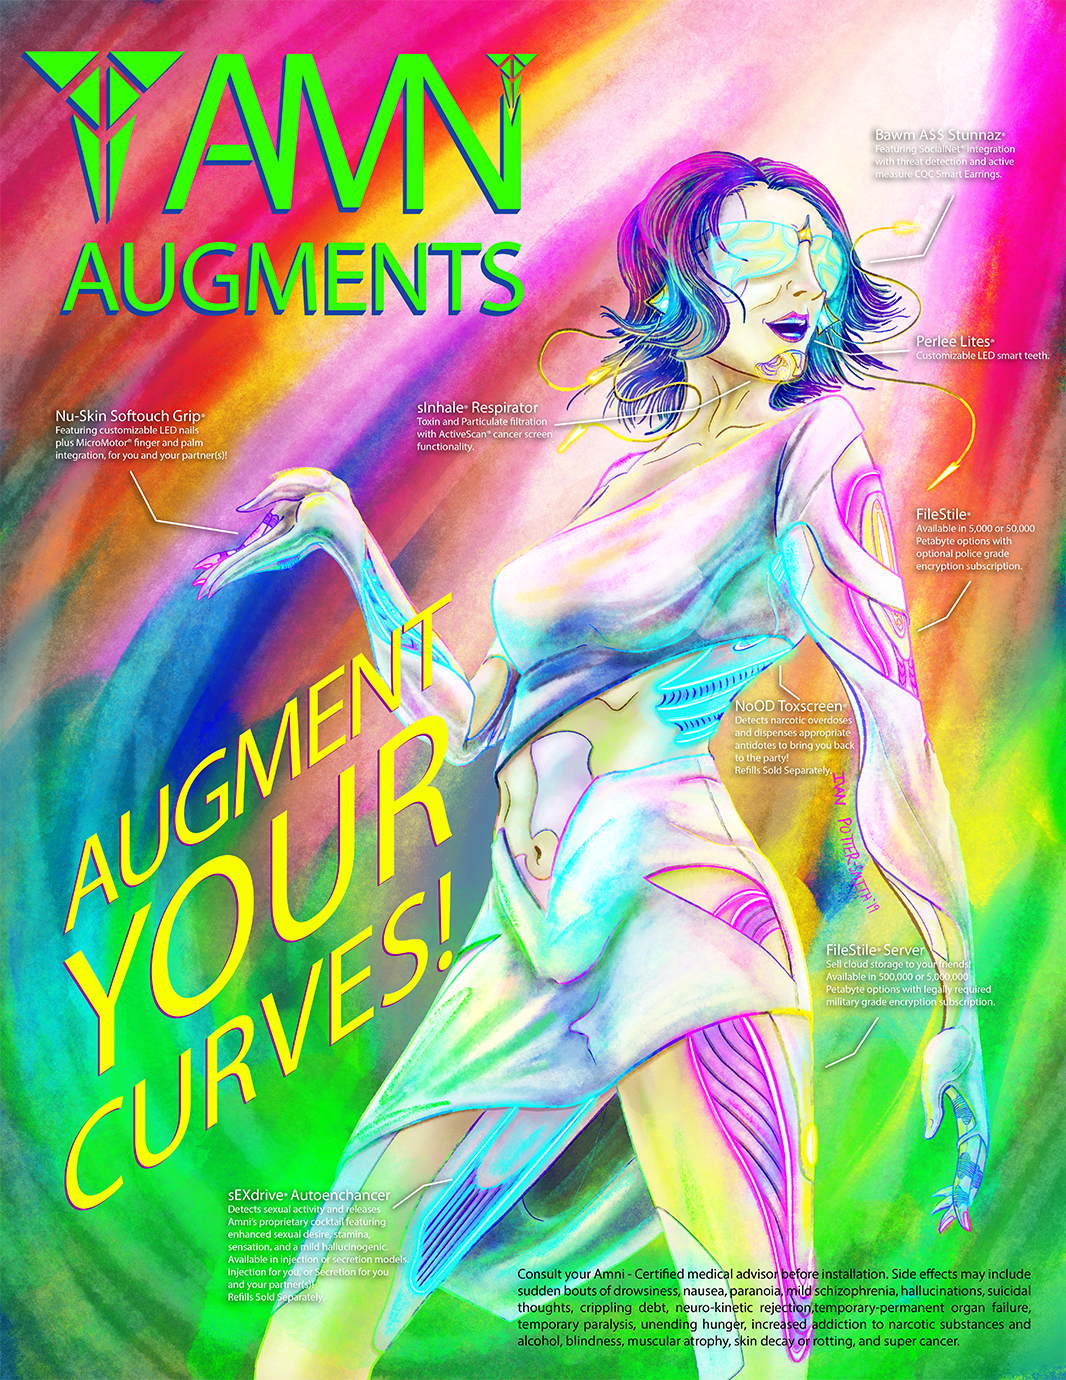 Augment Your Curves by Ivan Potter-Smith